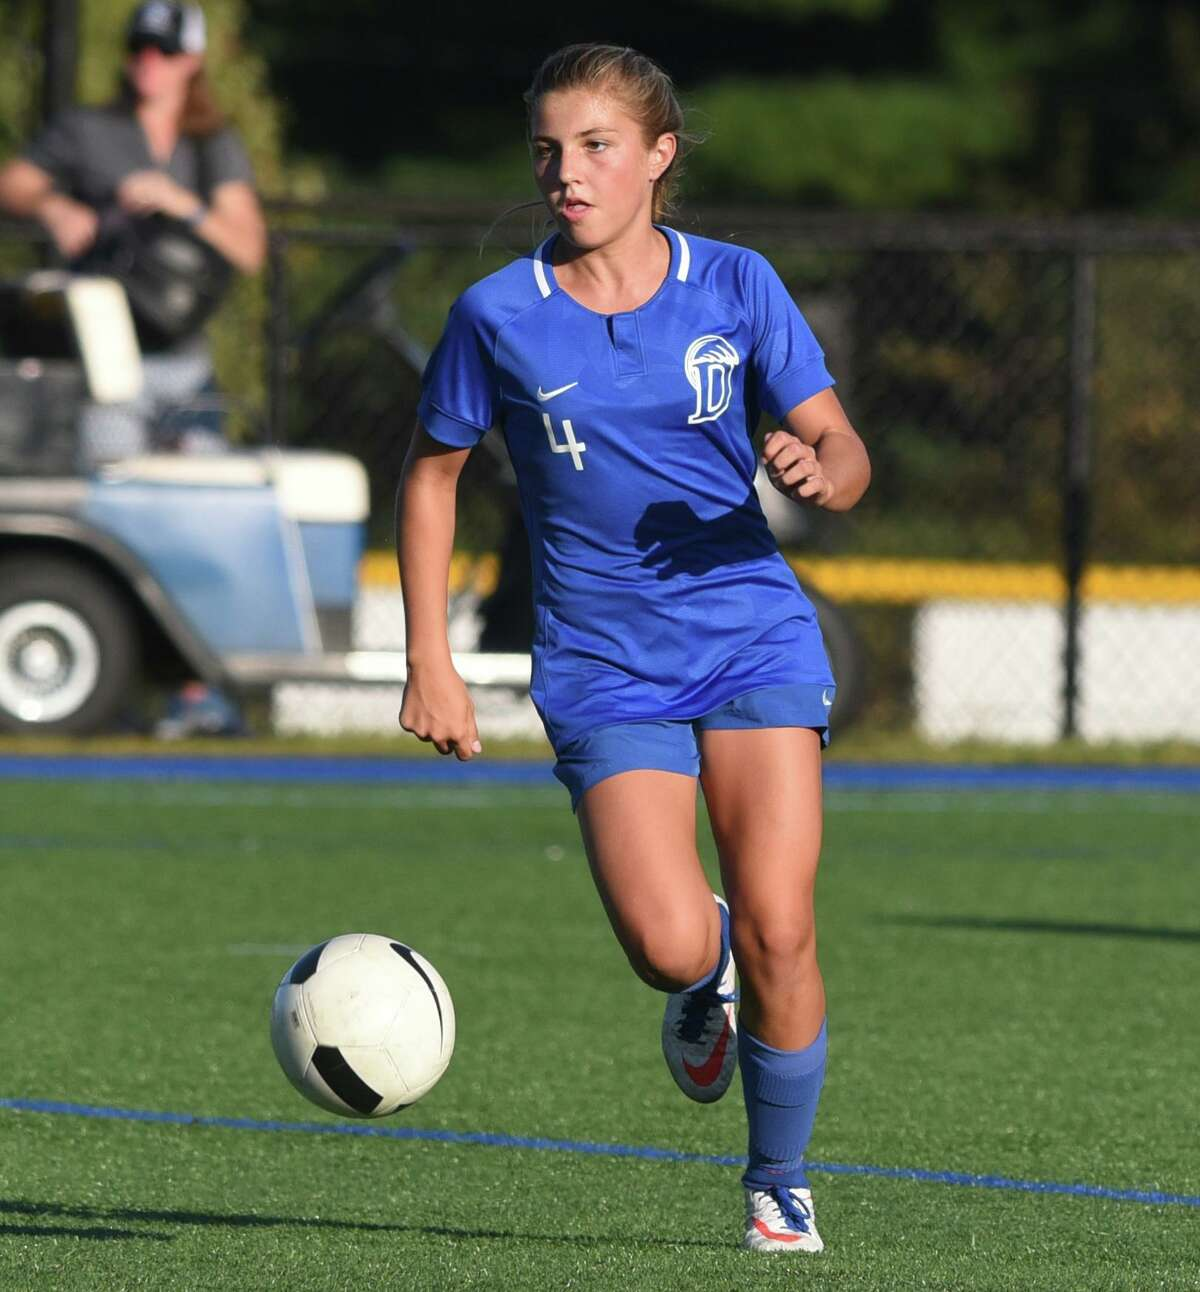 Darien's Chloe Humphrey (4) looks for an opportunity during a girls soccer game at Darien High School on Wednesday, Sept. 25, 2019.